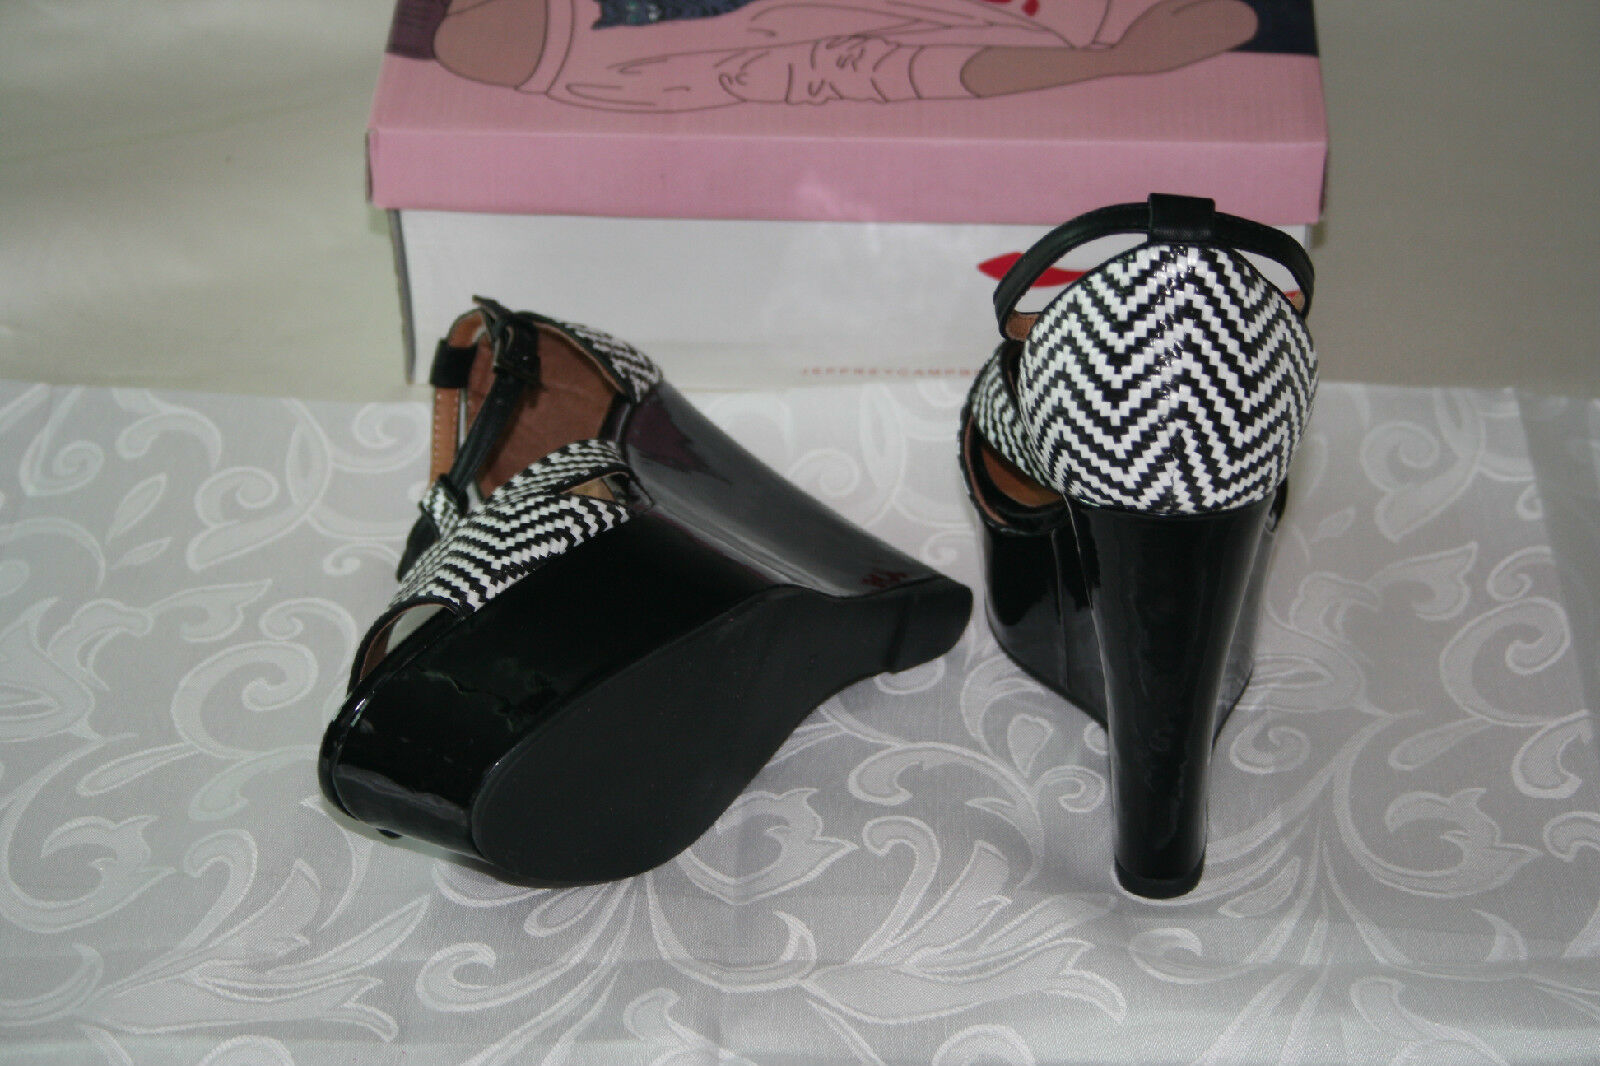 NEW JEFFREY CAMPBELL TANYA BLACK AND WHITE WHITE WHITE PATENT WOMEN'S SANDAL  US 9 EUR 40 ce9caa